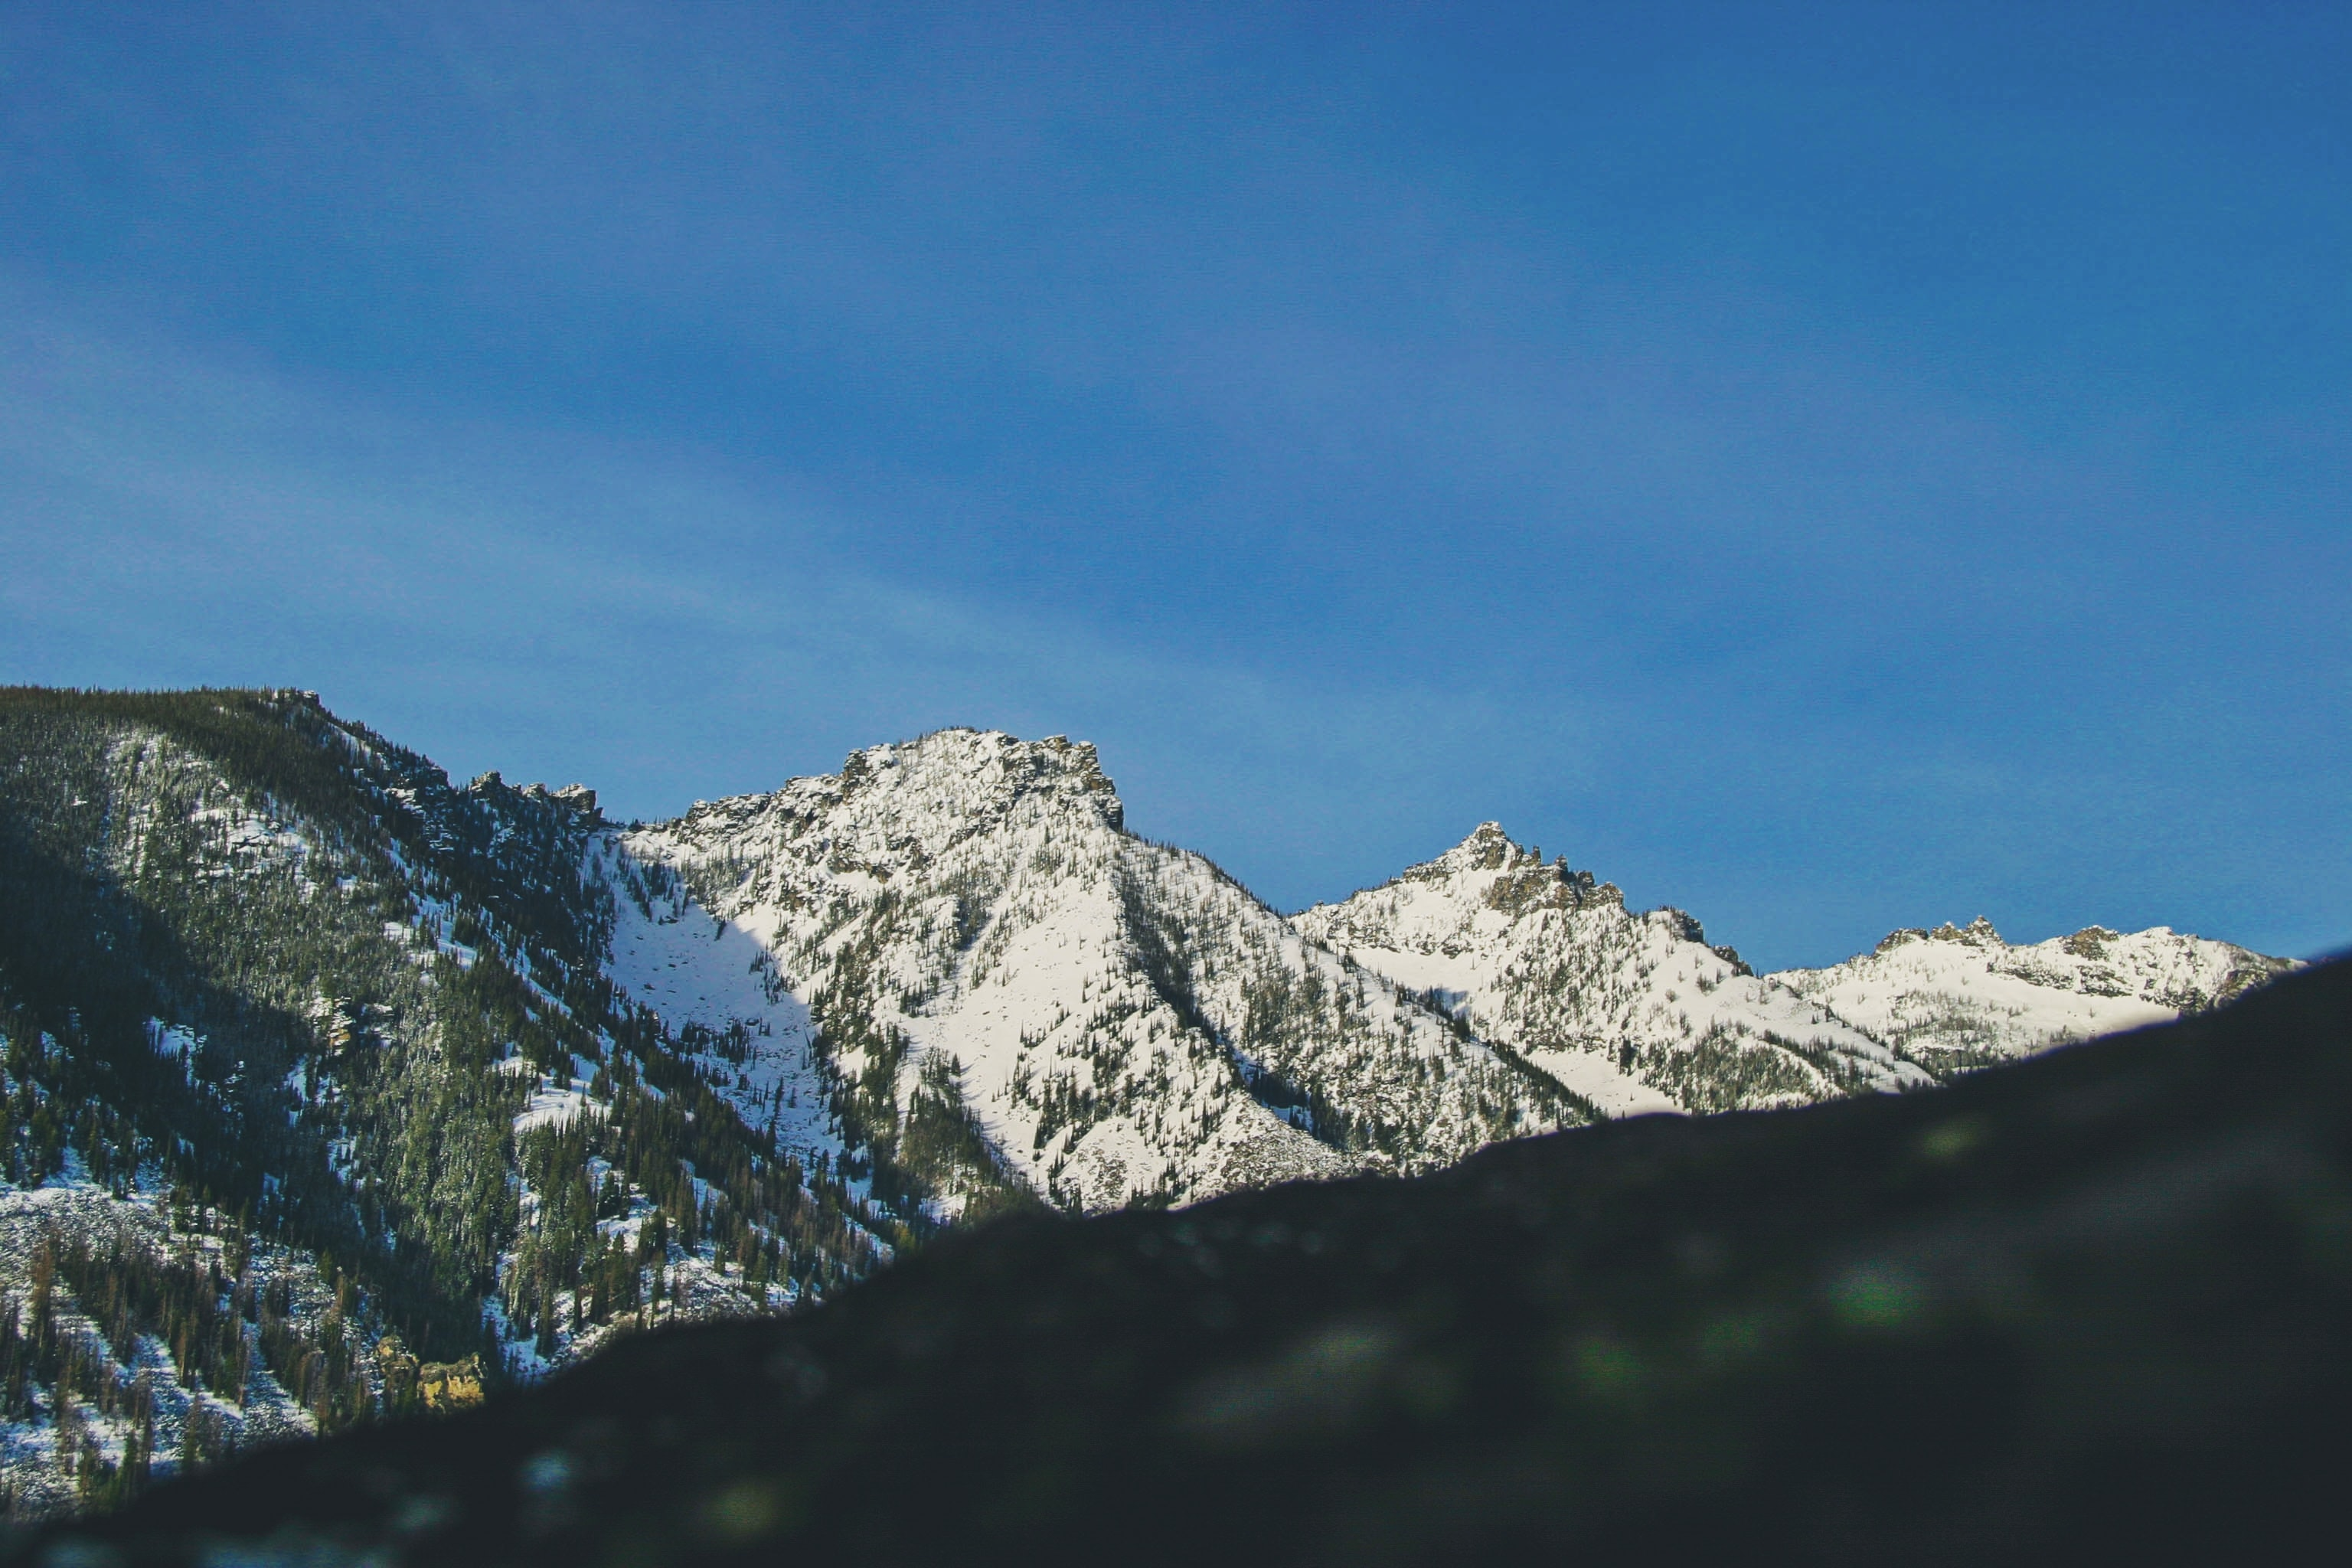 Snow-capped mountain slopes under blue sky